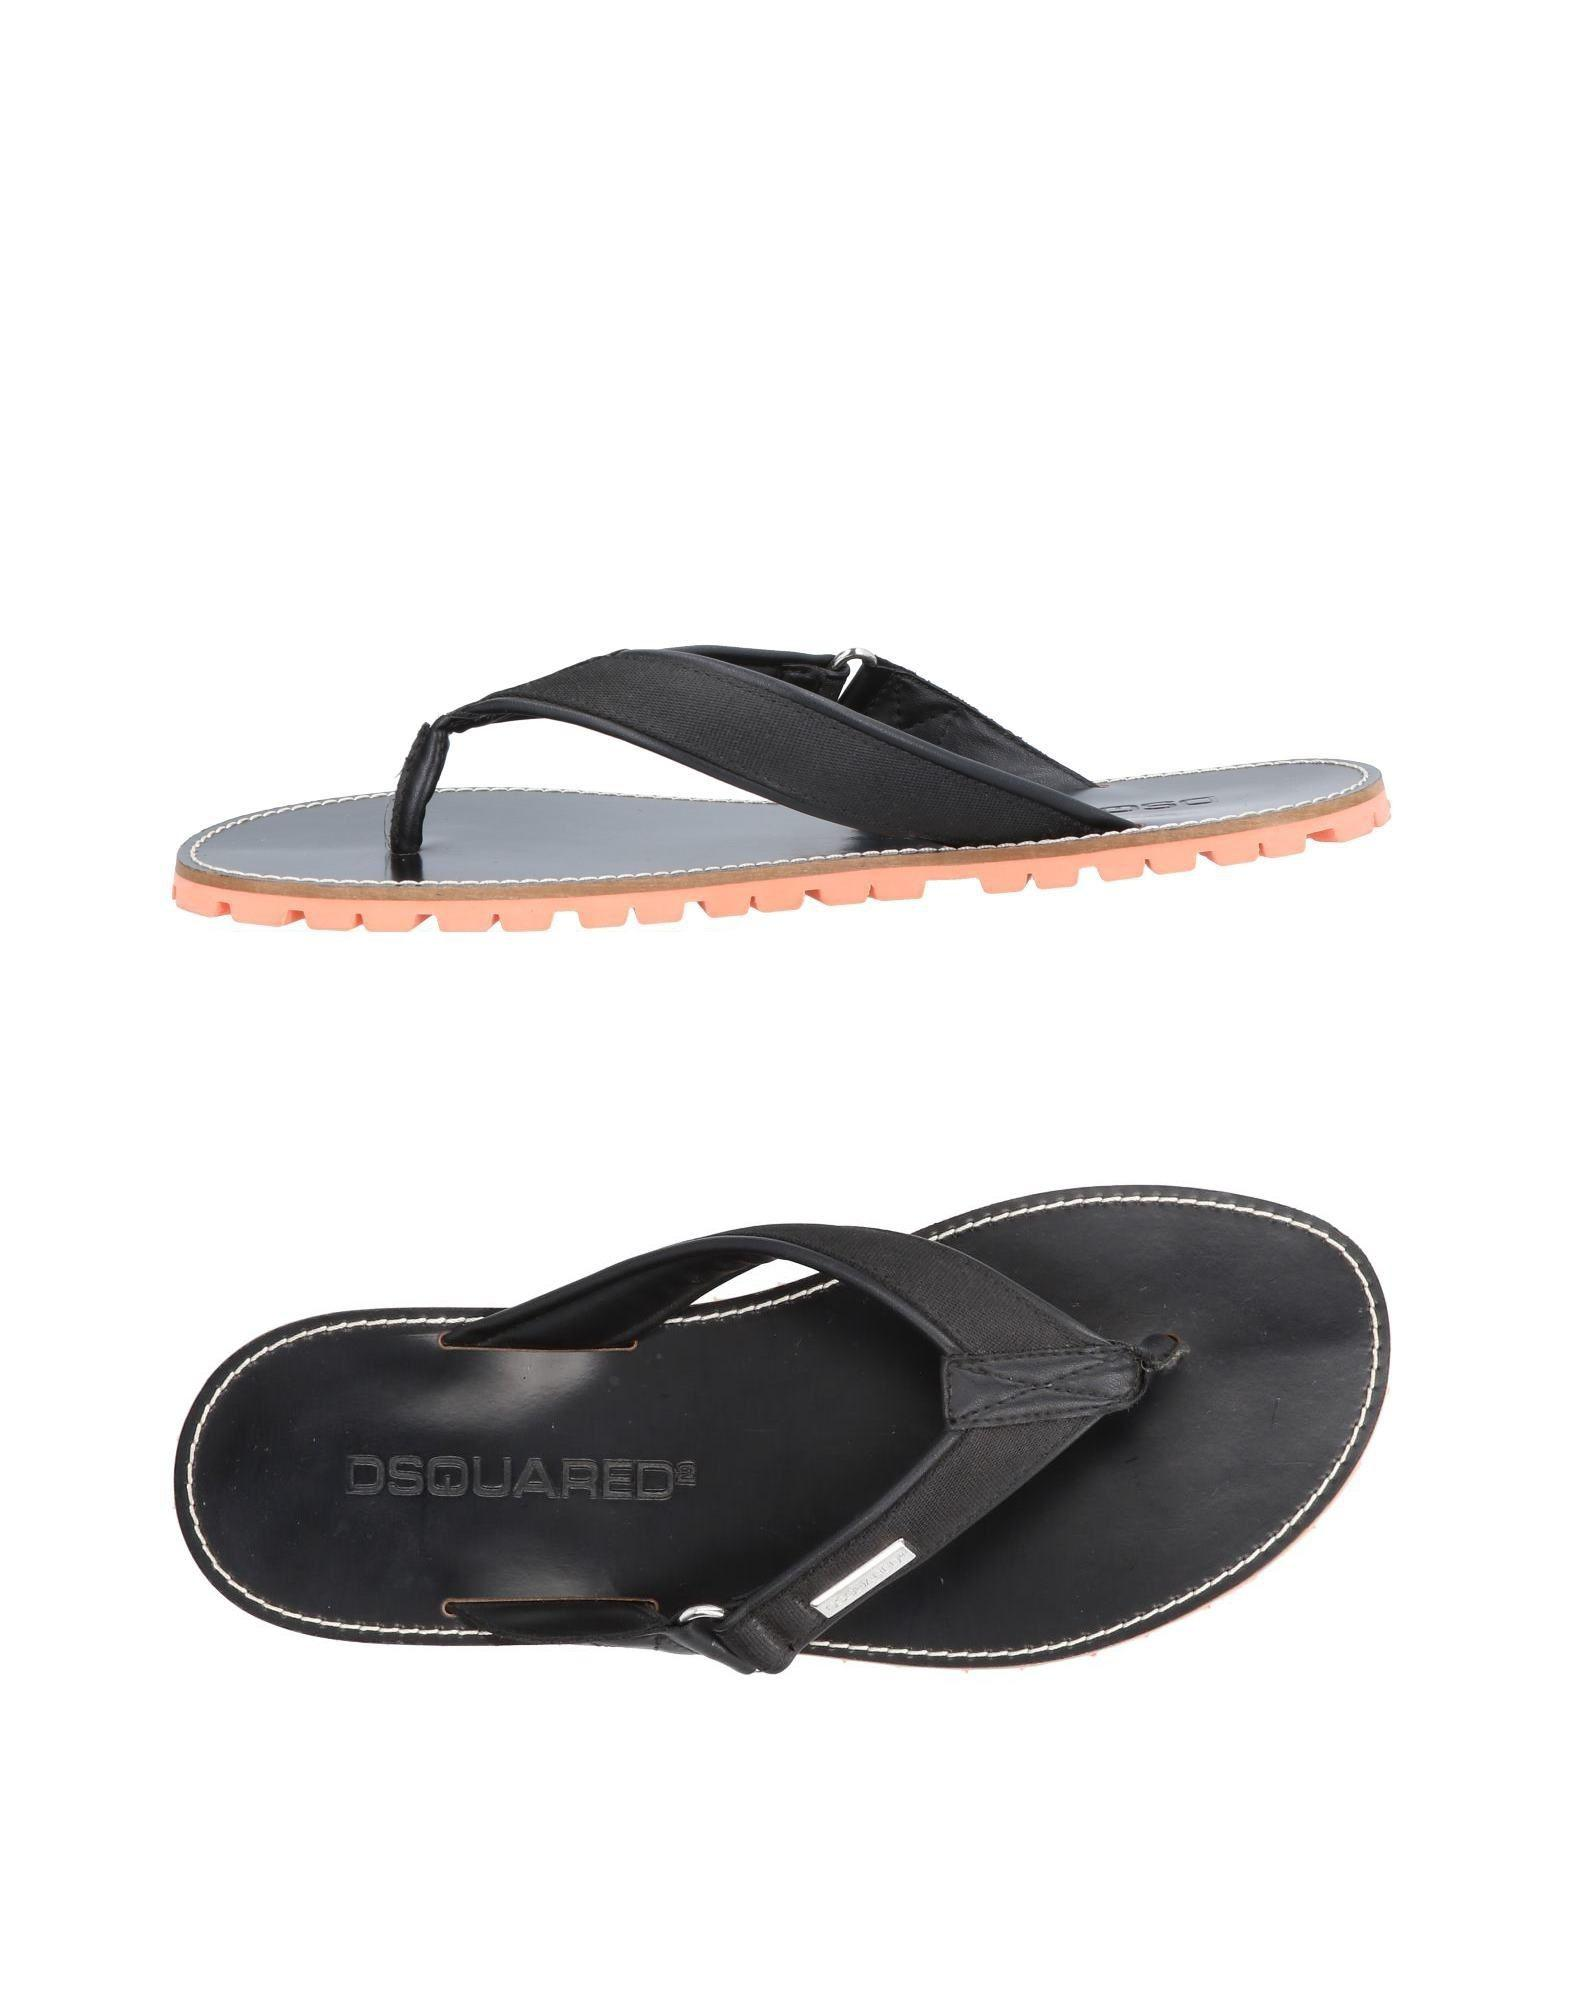 94447f76e Dsquared² Toe Strap Sandal in Black for Men - Lyst